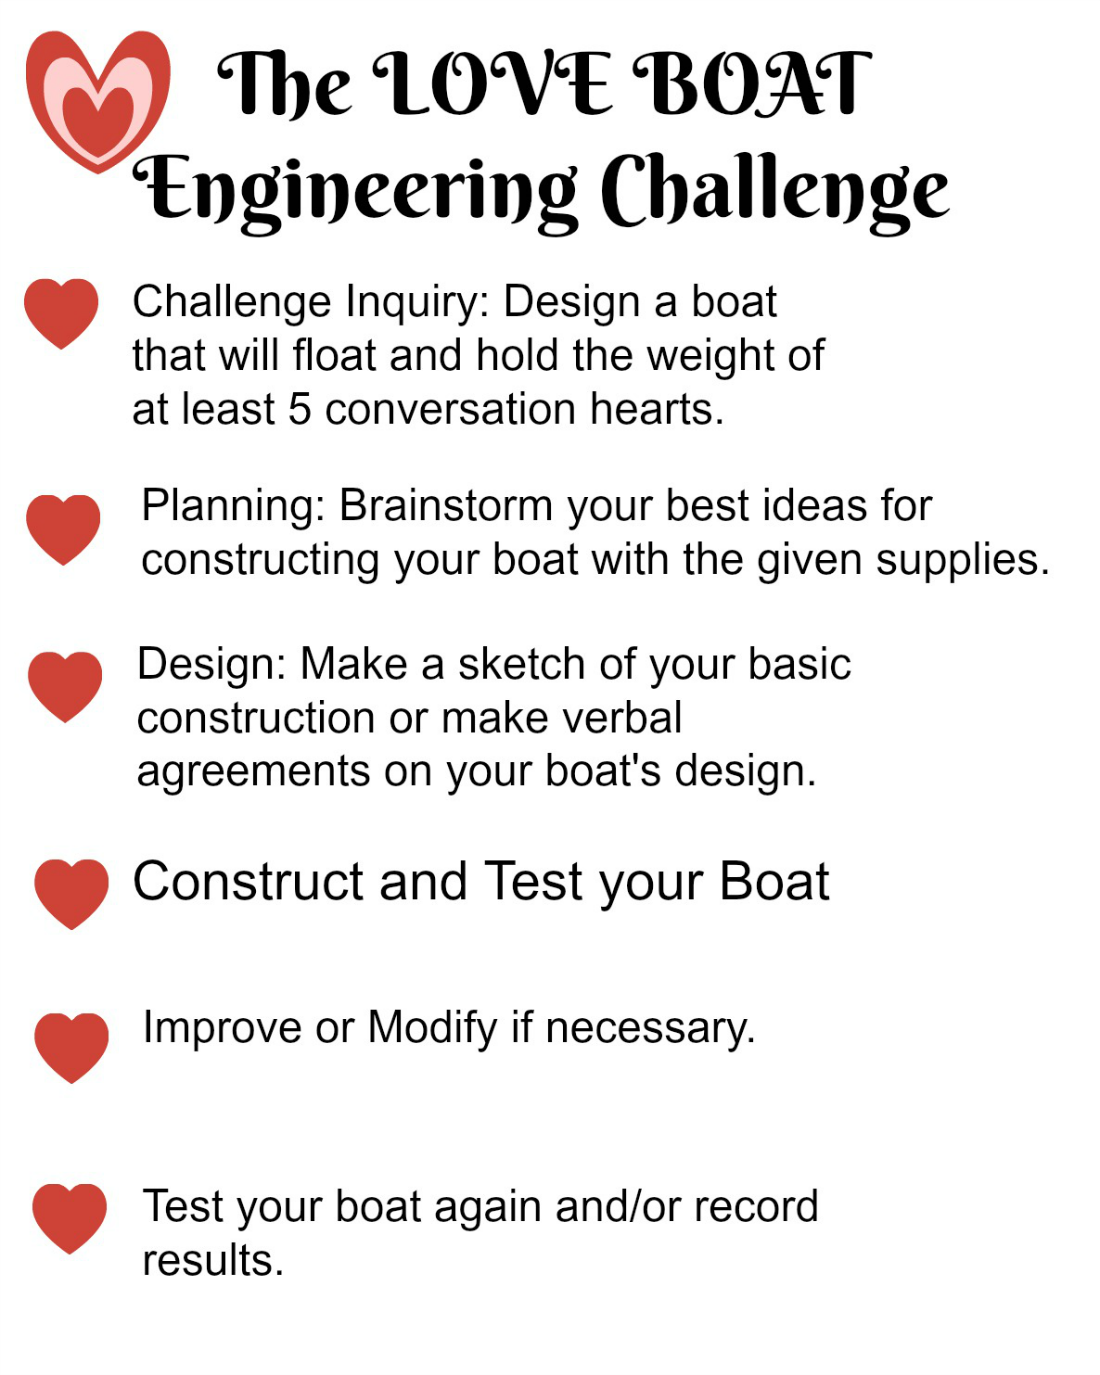 The Love Boat Steam Engineering Challenge For Kids